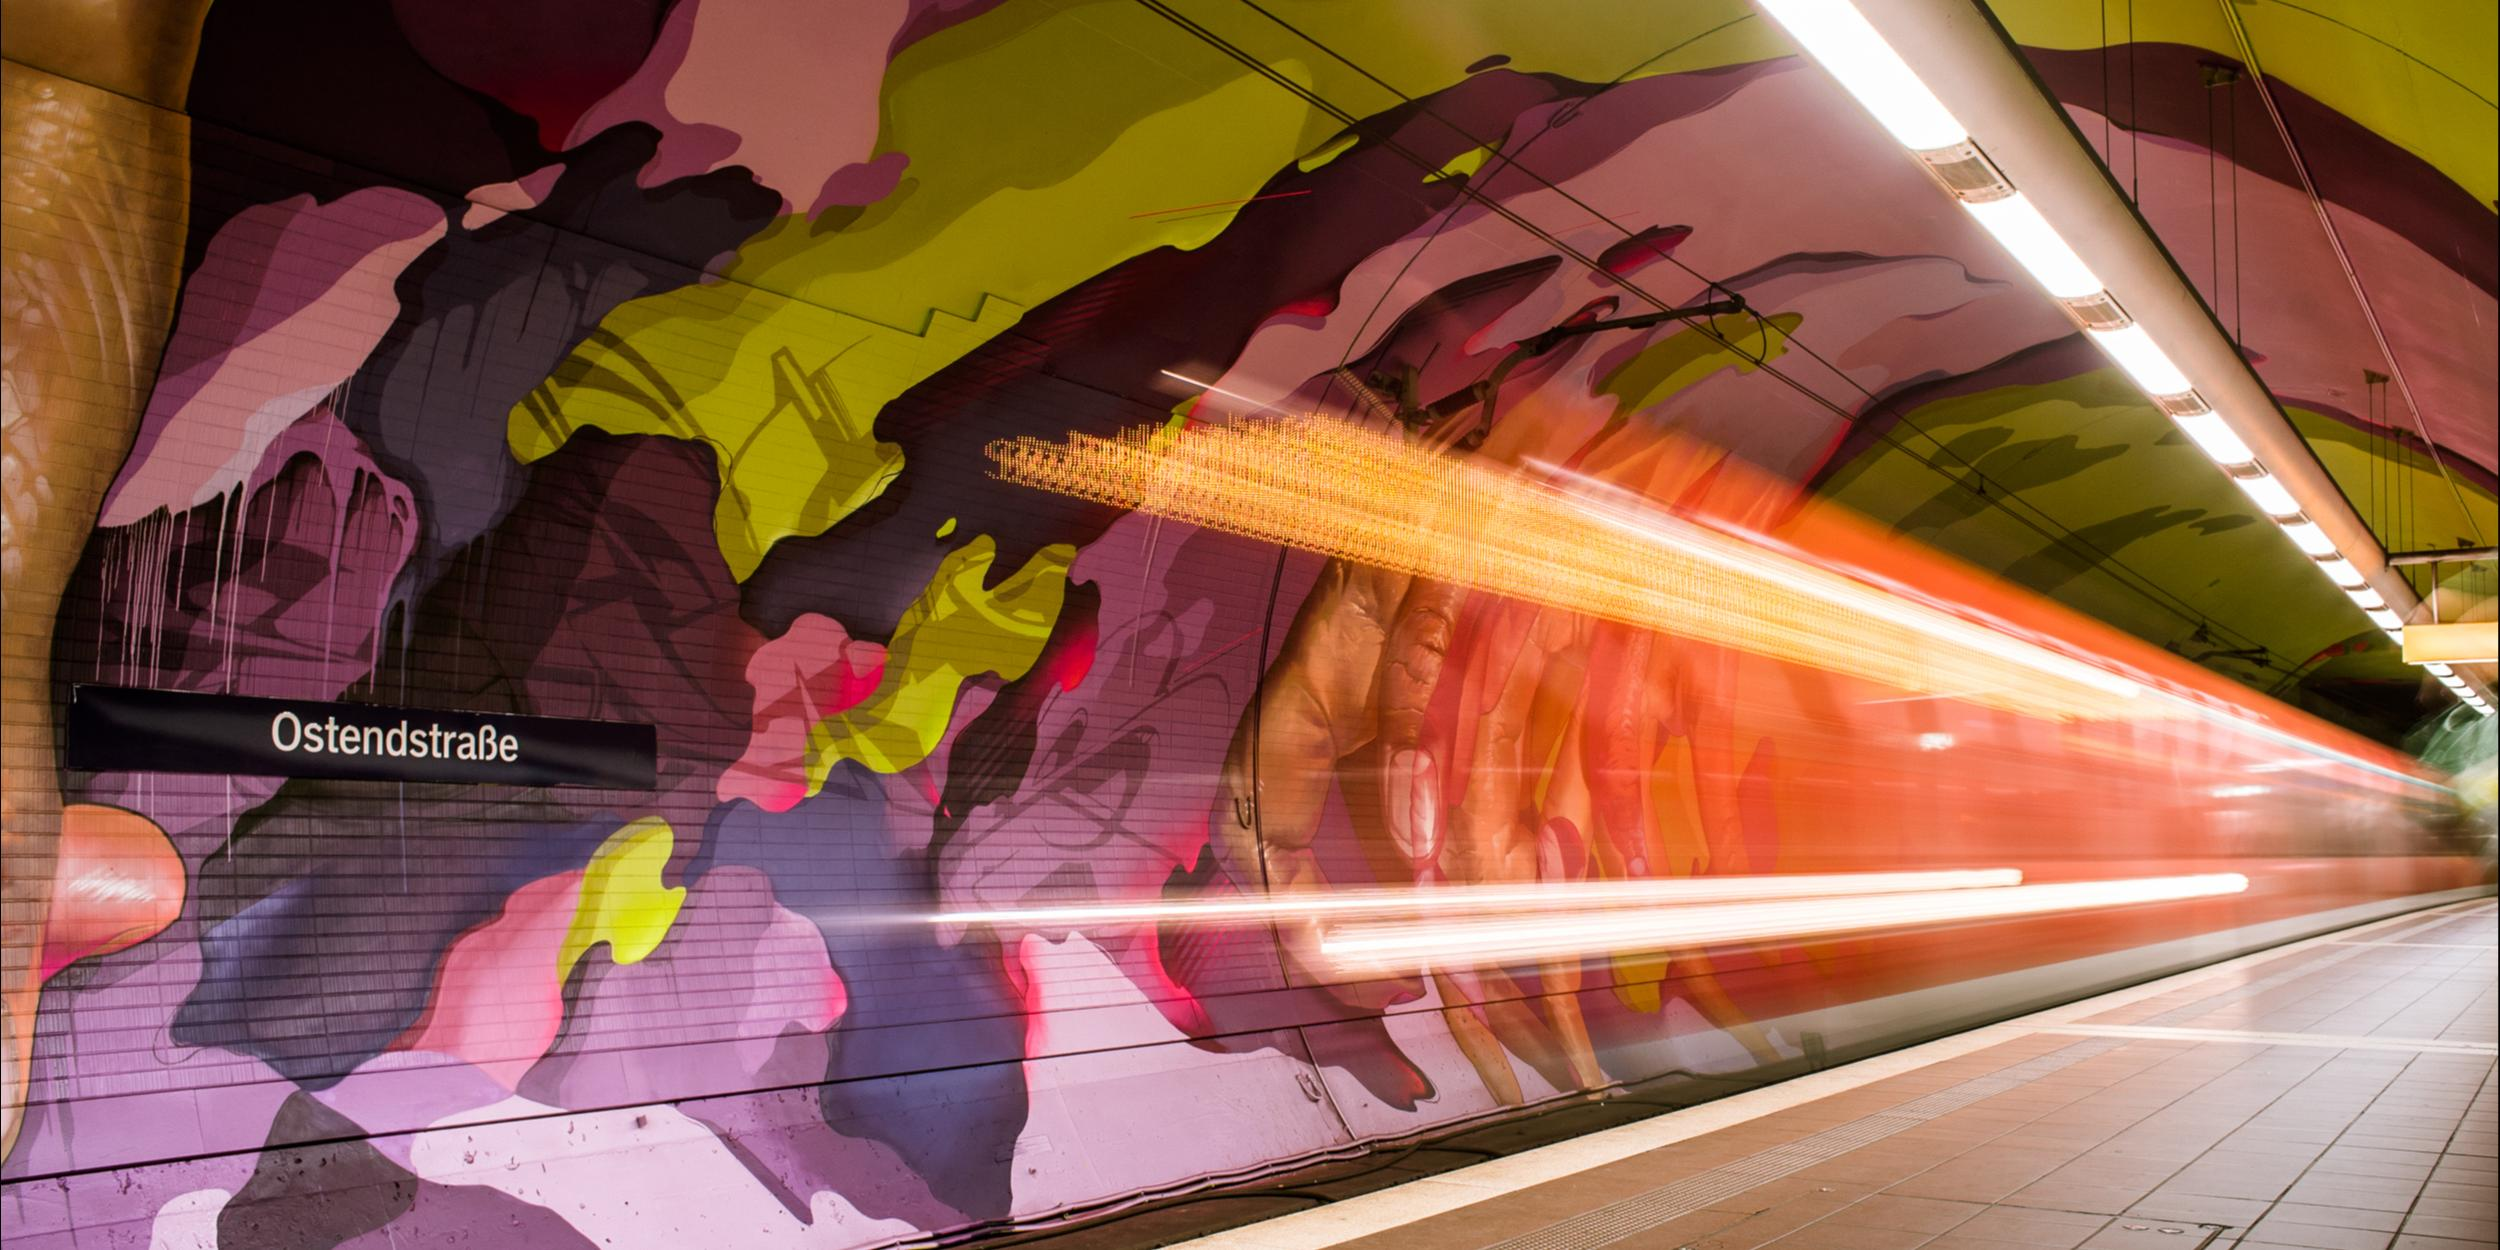 A work by Does - Ostendstrasse frankfurt germany tunnel 14